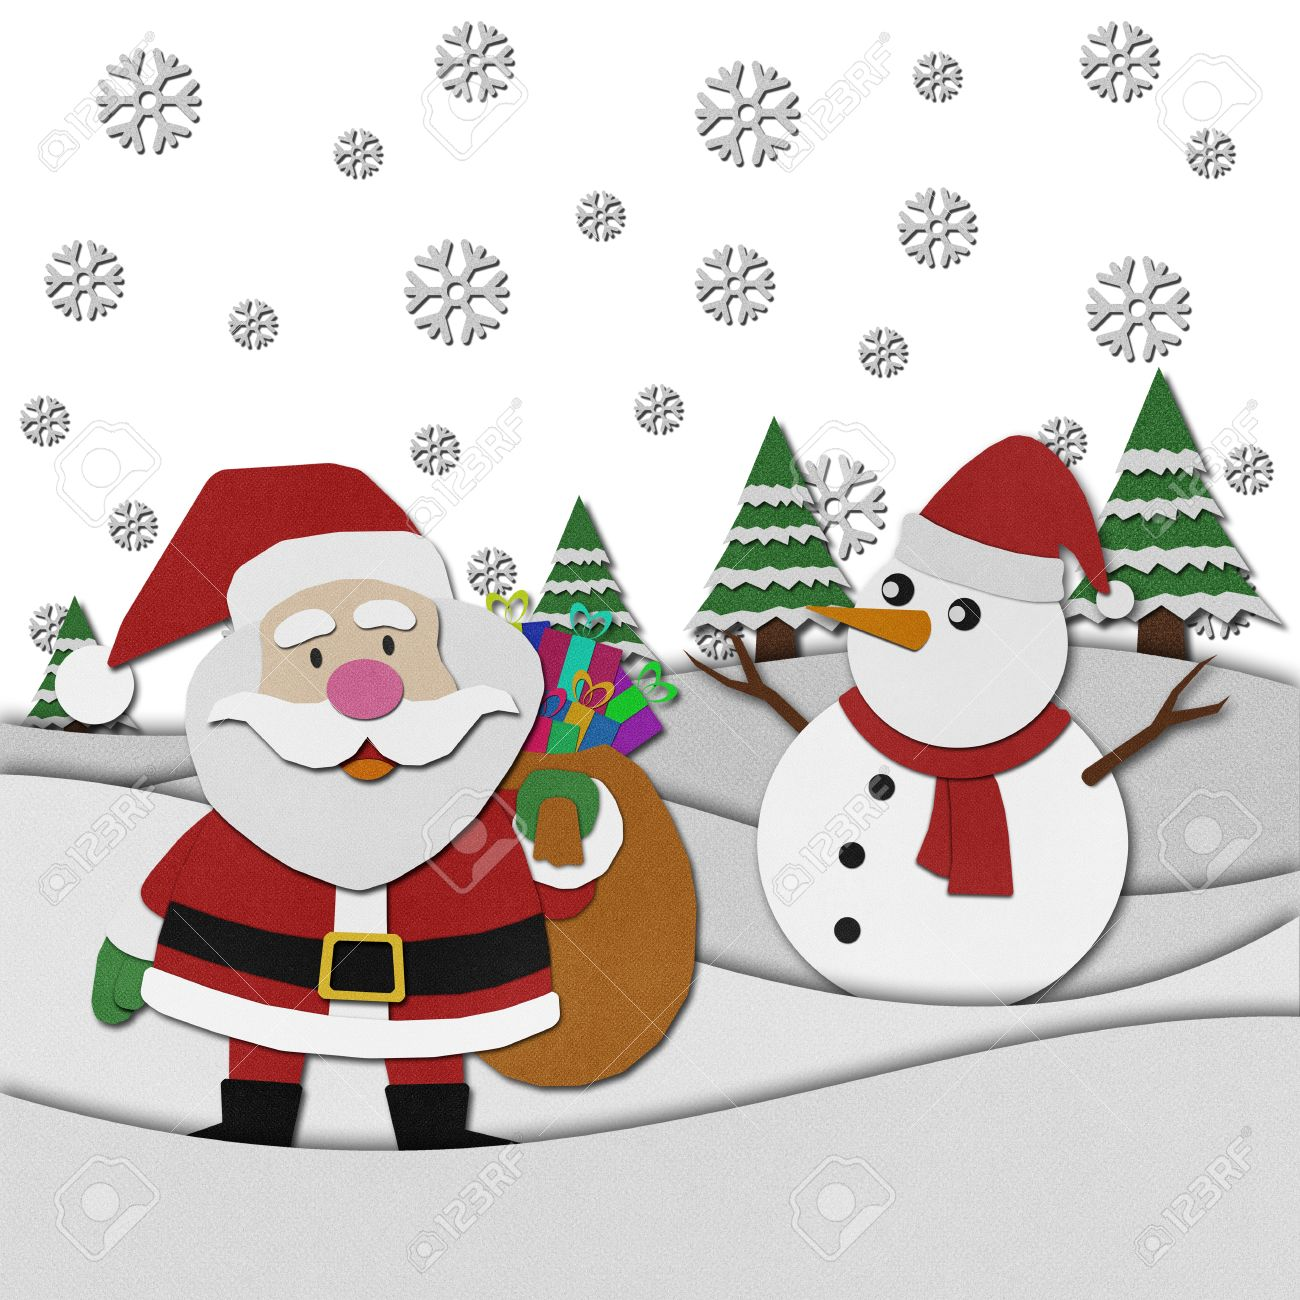 Uncategorized Santa Claus Paper santa claus recycled papercraft on paper background stock photo 15809963